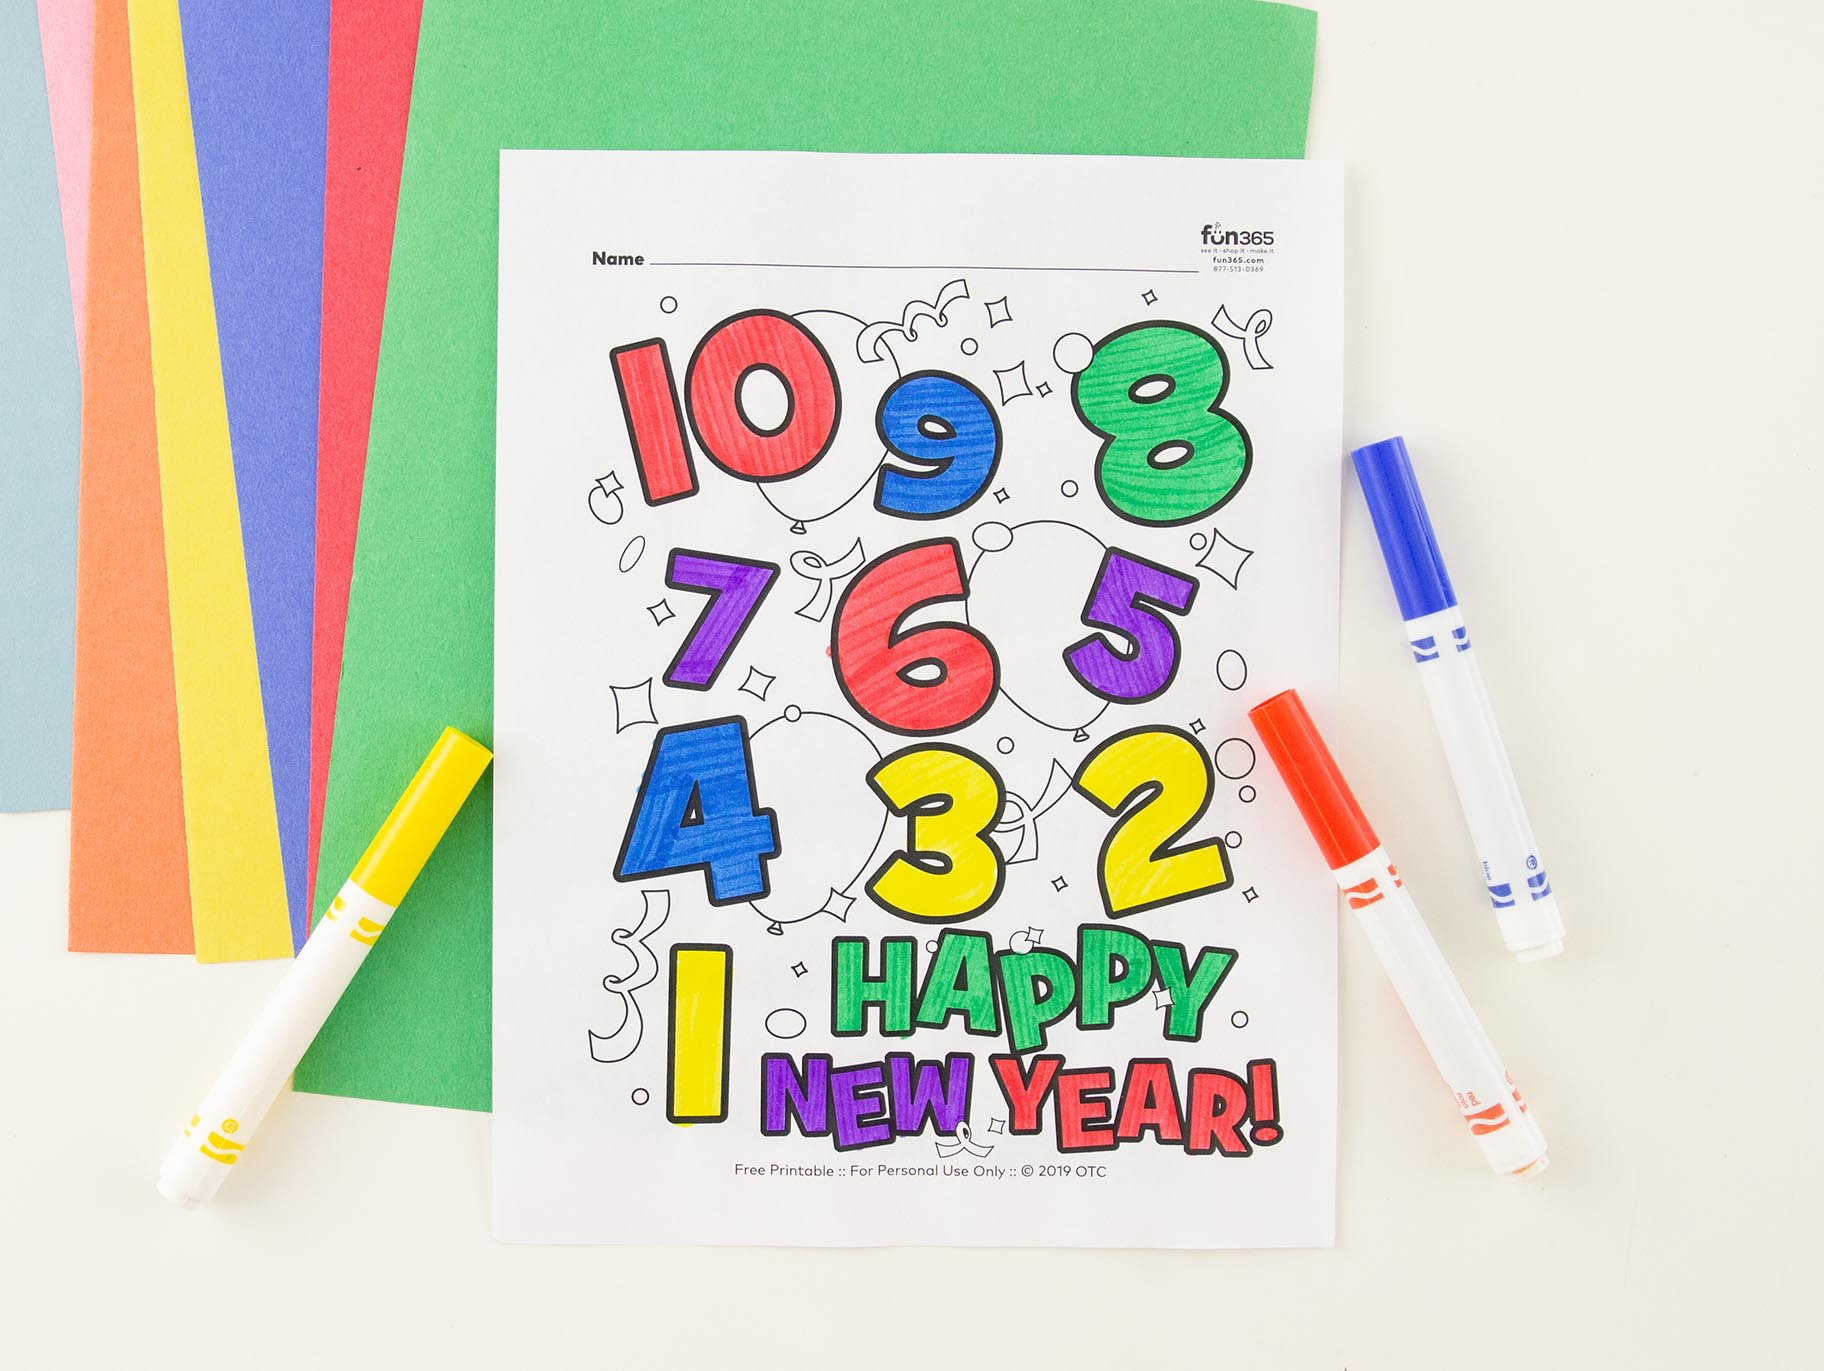 New Years Eve Countdown Coloring Page Free Printable Fun365